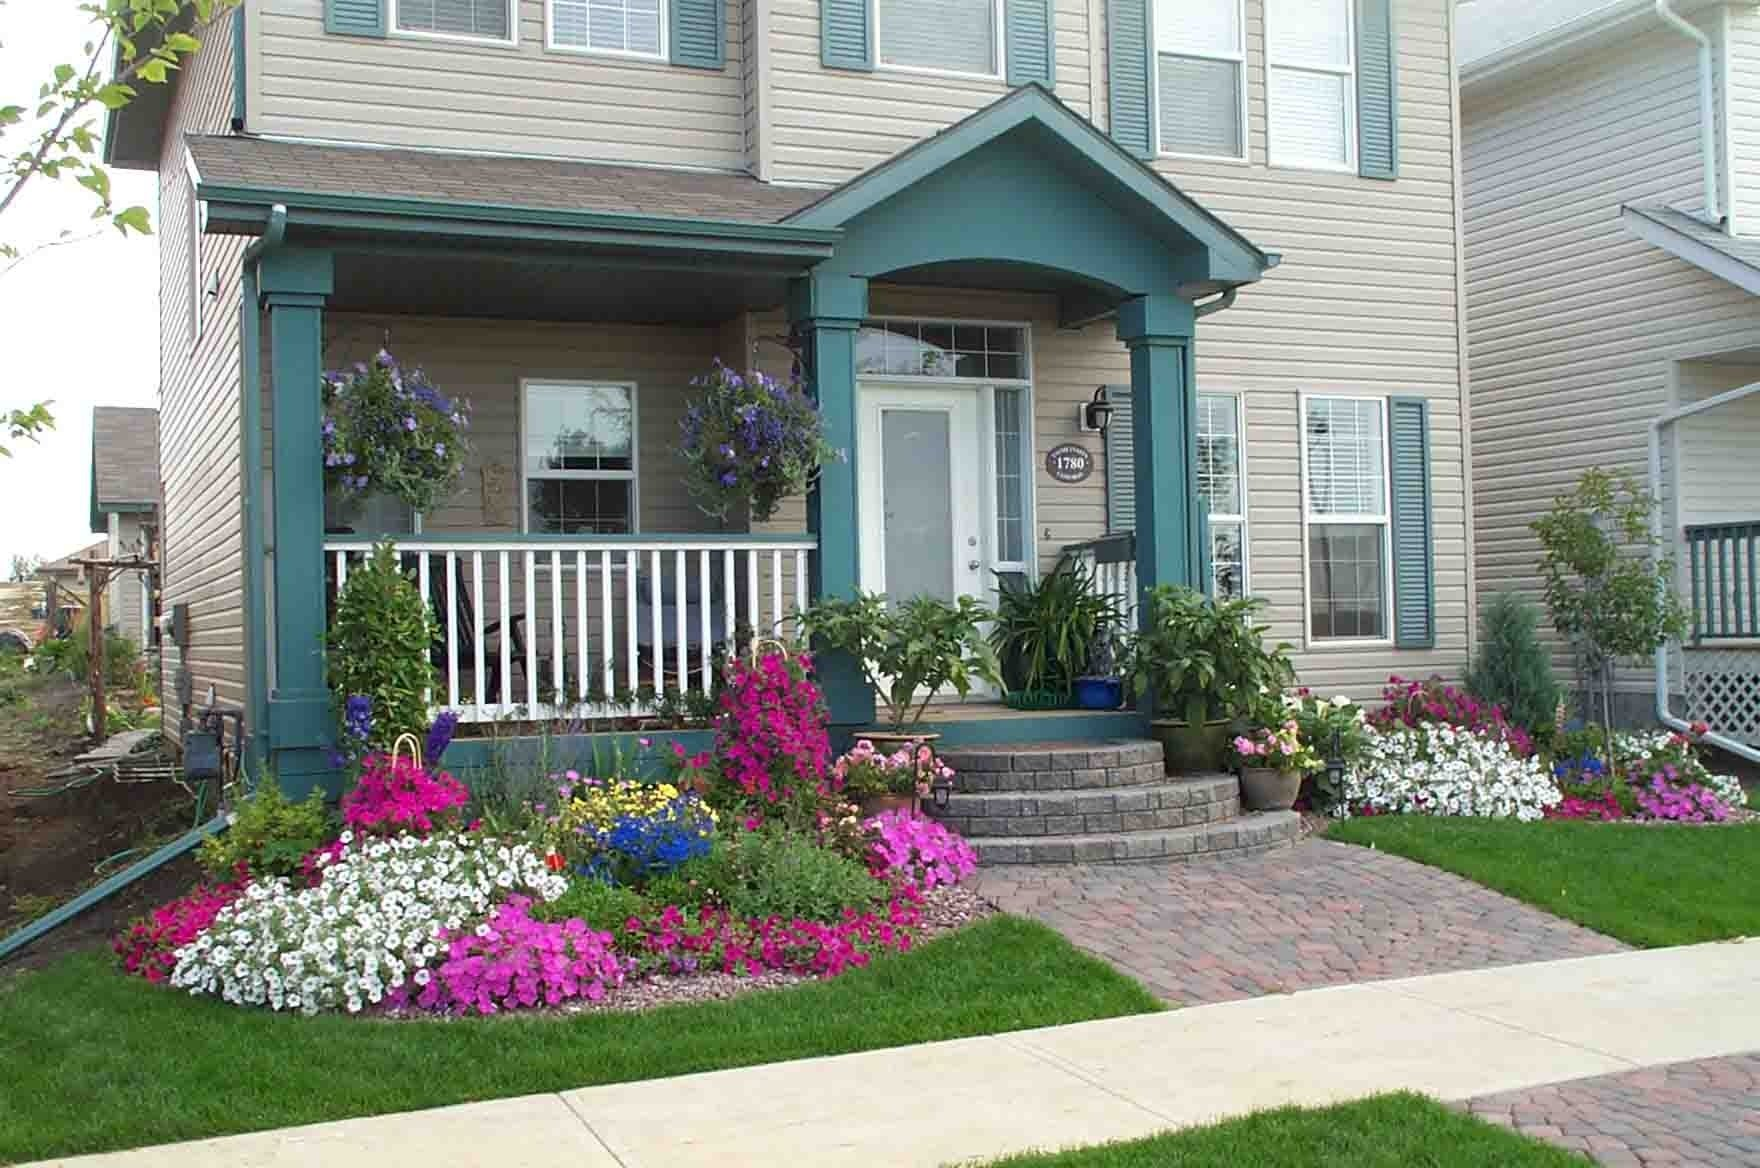 10 Stylish Small Front Yard Flower Bed Ideas images about landscape ideas on pinterest blue spruce small front 2 2020